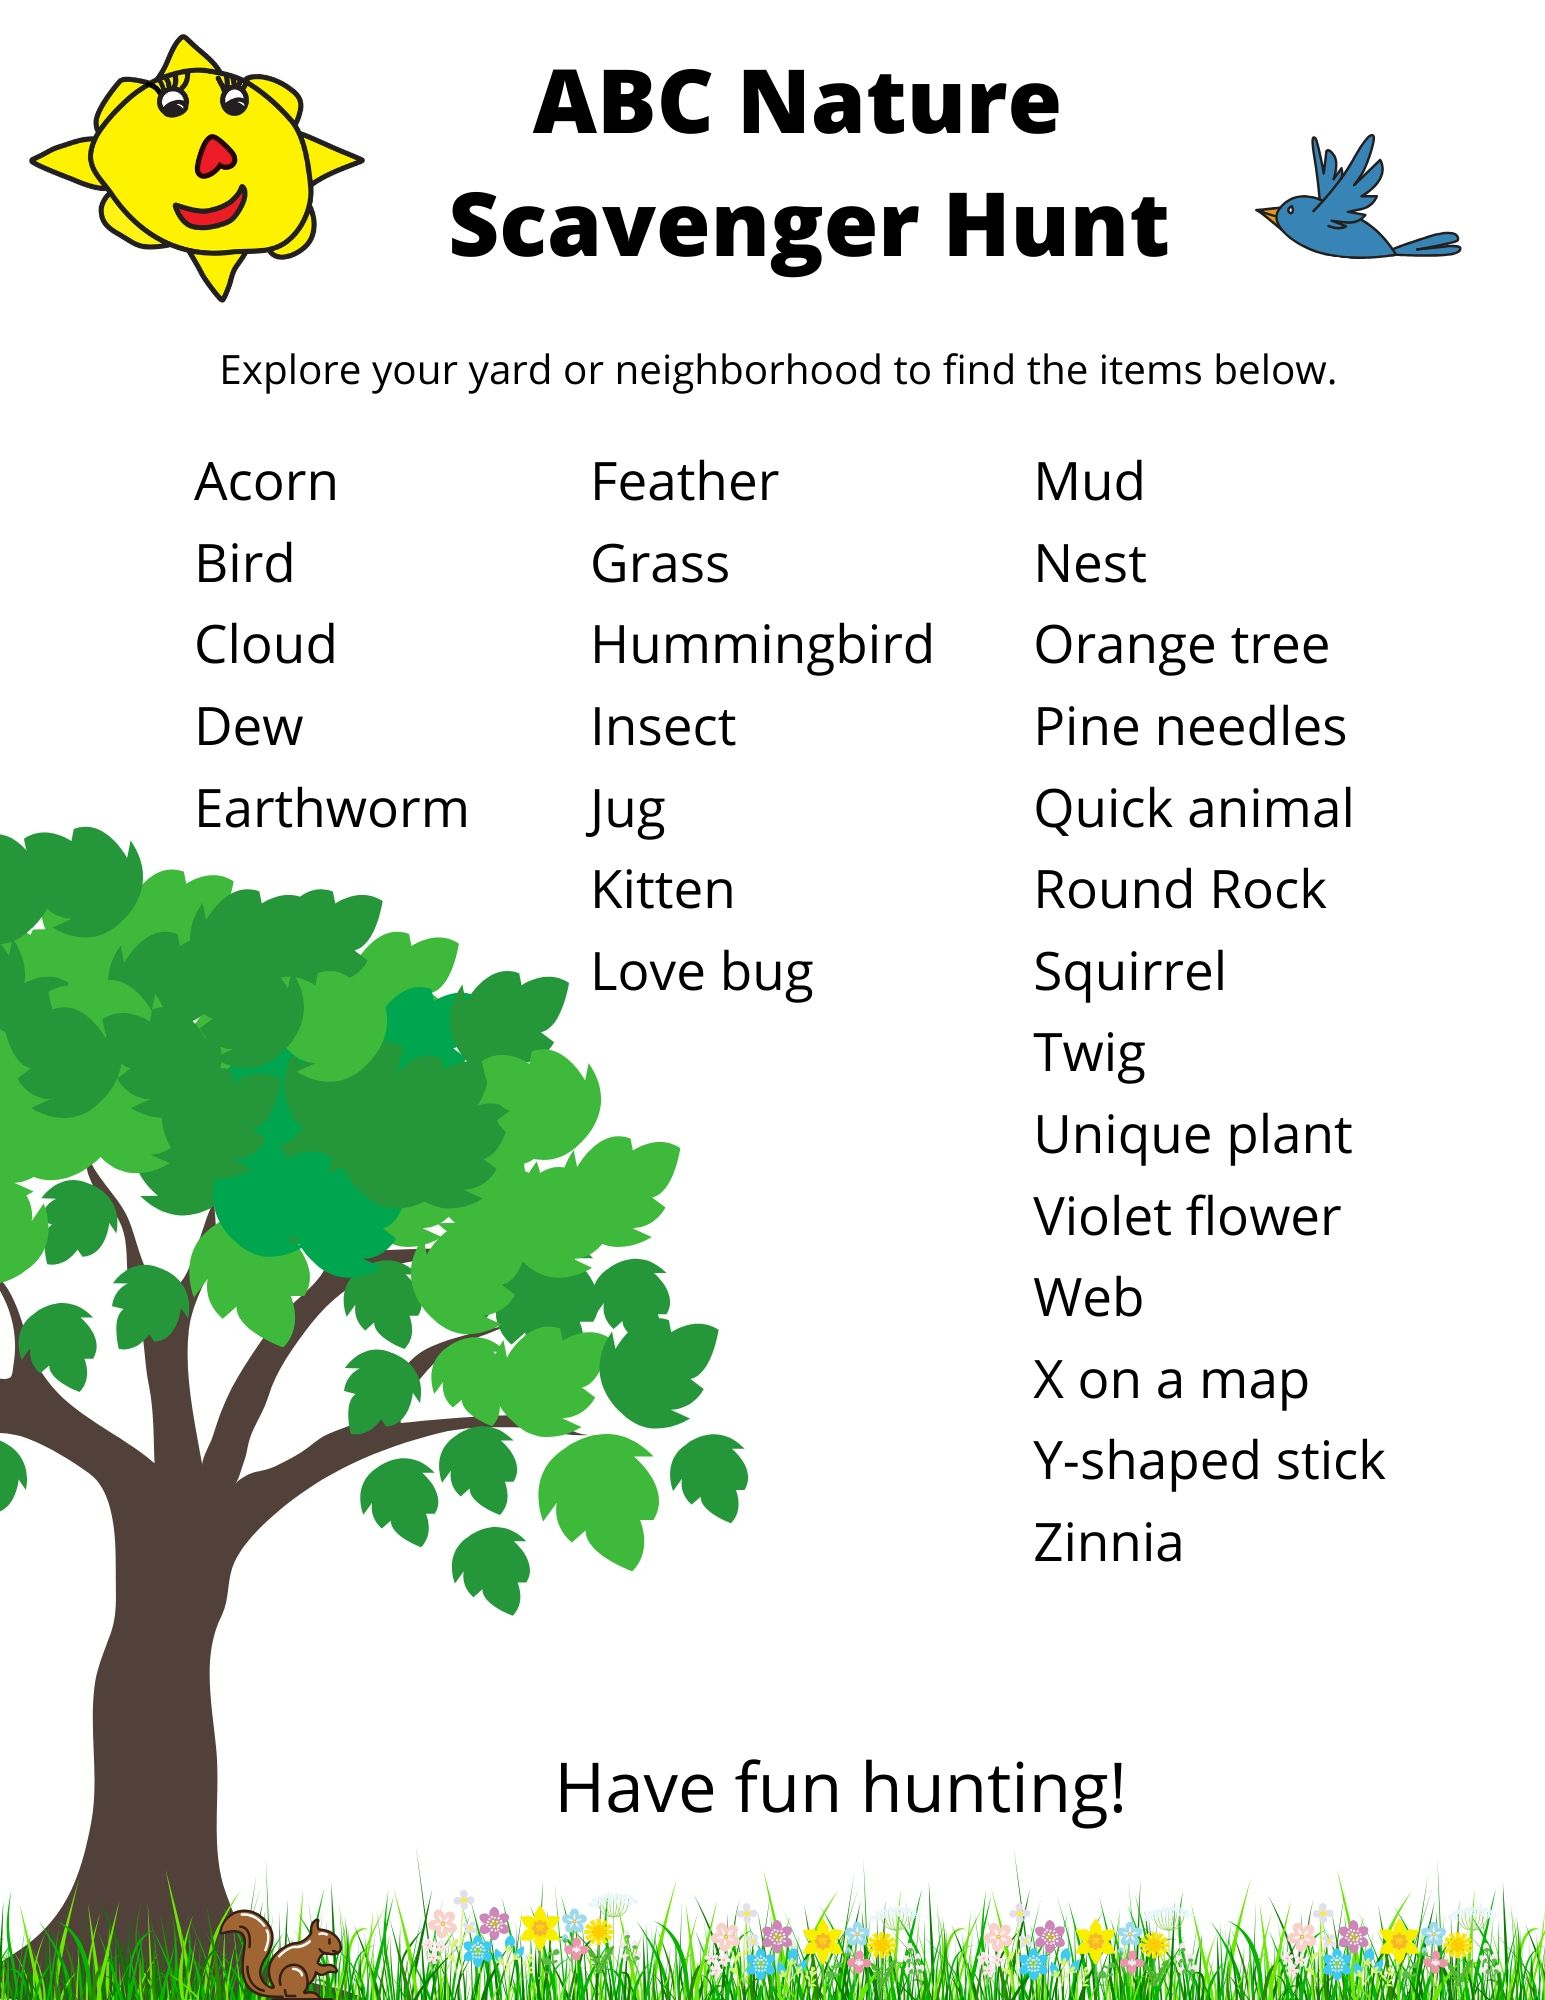 ABC Nature Scavenger Hunt (1)